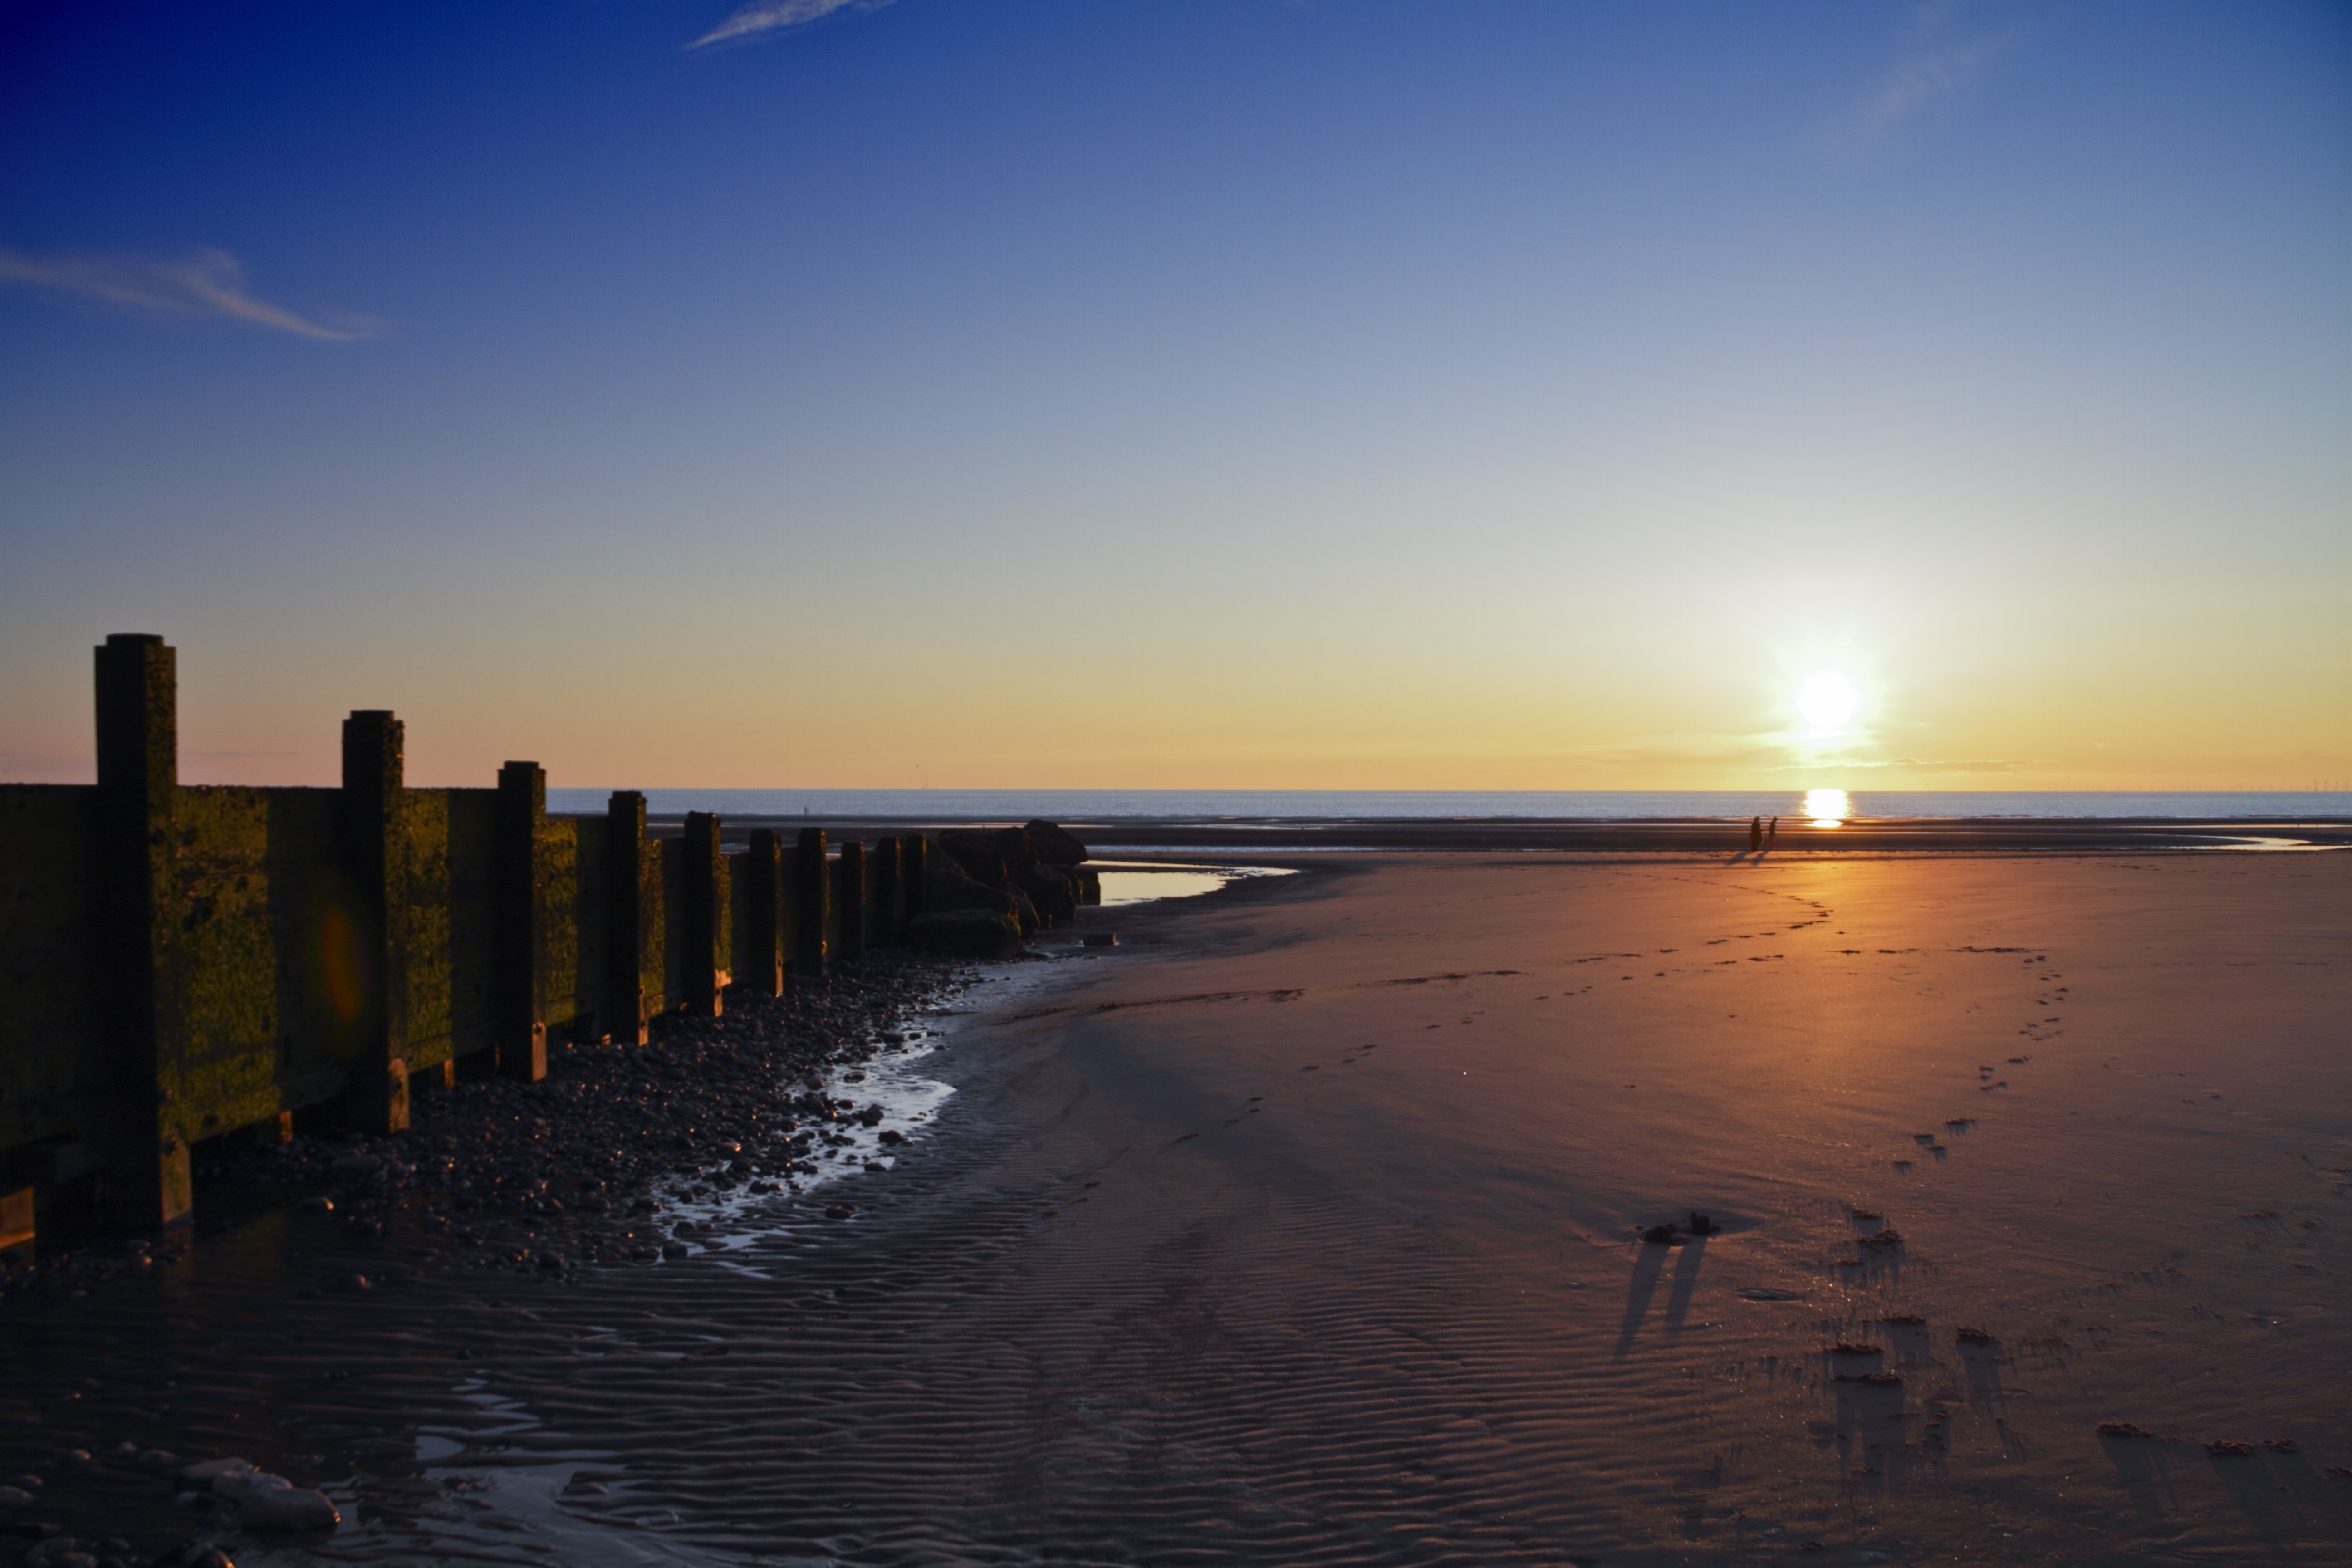 Free download high resolution image - free image free photo free stock image public domain picture -Cleveleys Beach Sunset